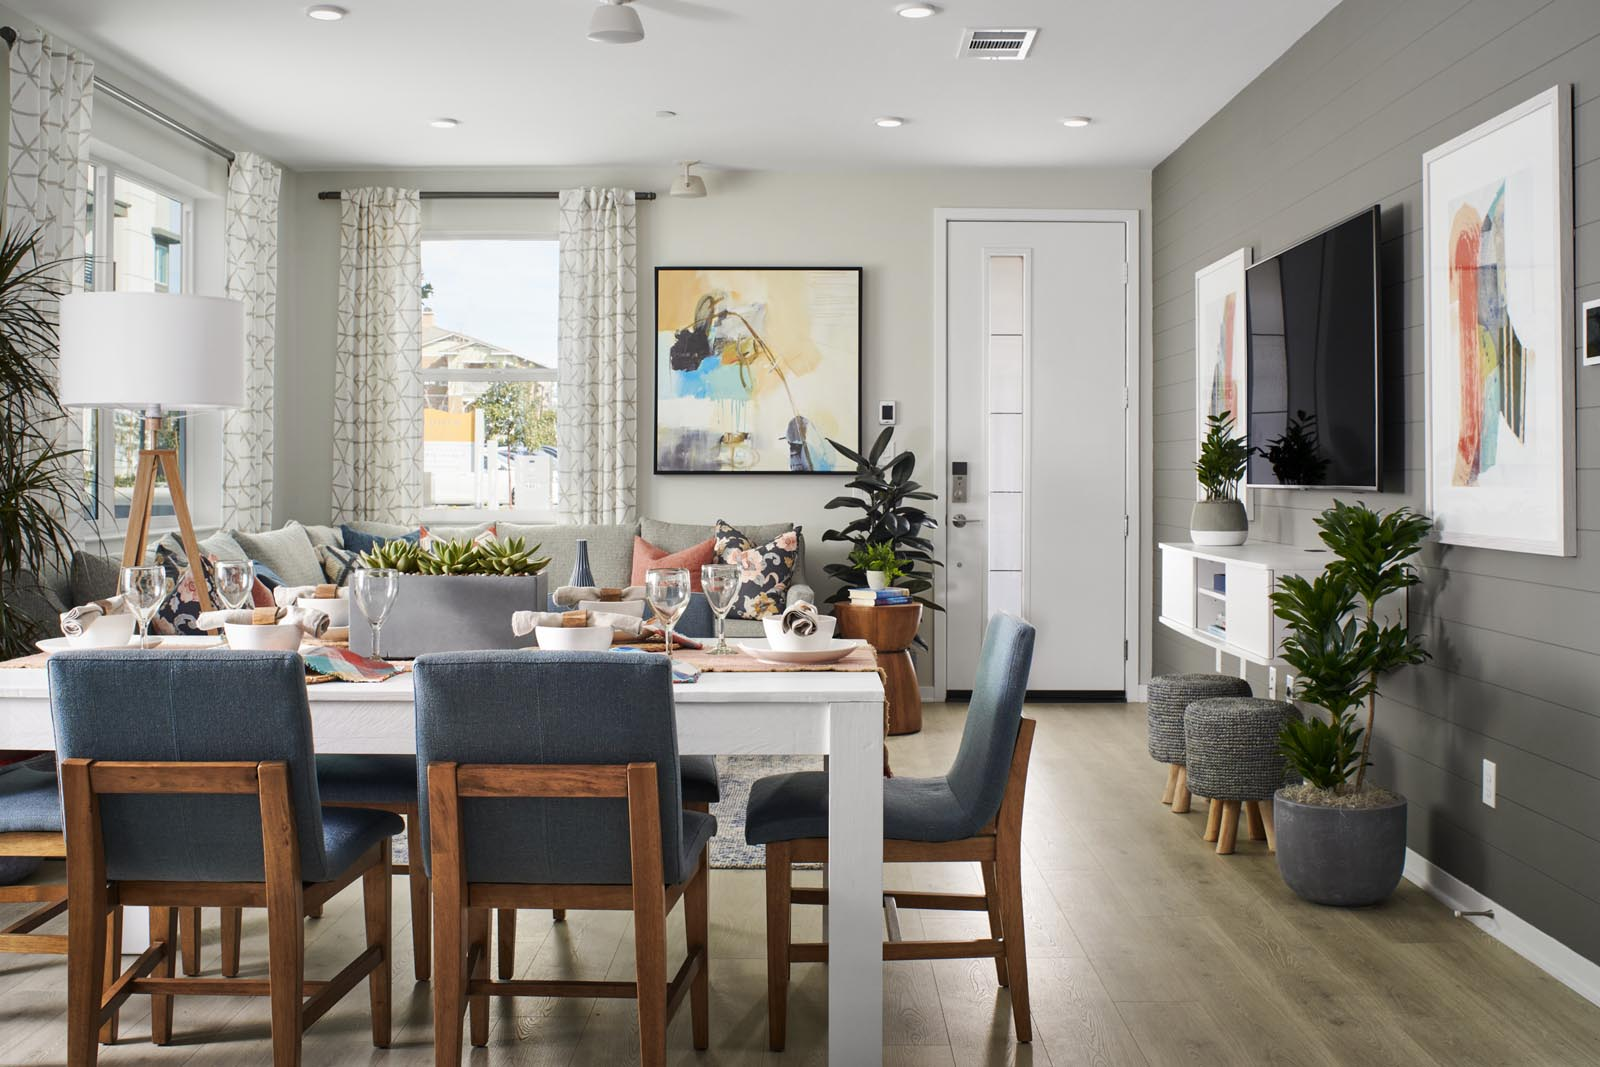 Dining Area | Residence 1 | Enliven | New Homes in Rancho Cucamonga, CA | Van Daele Homes